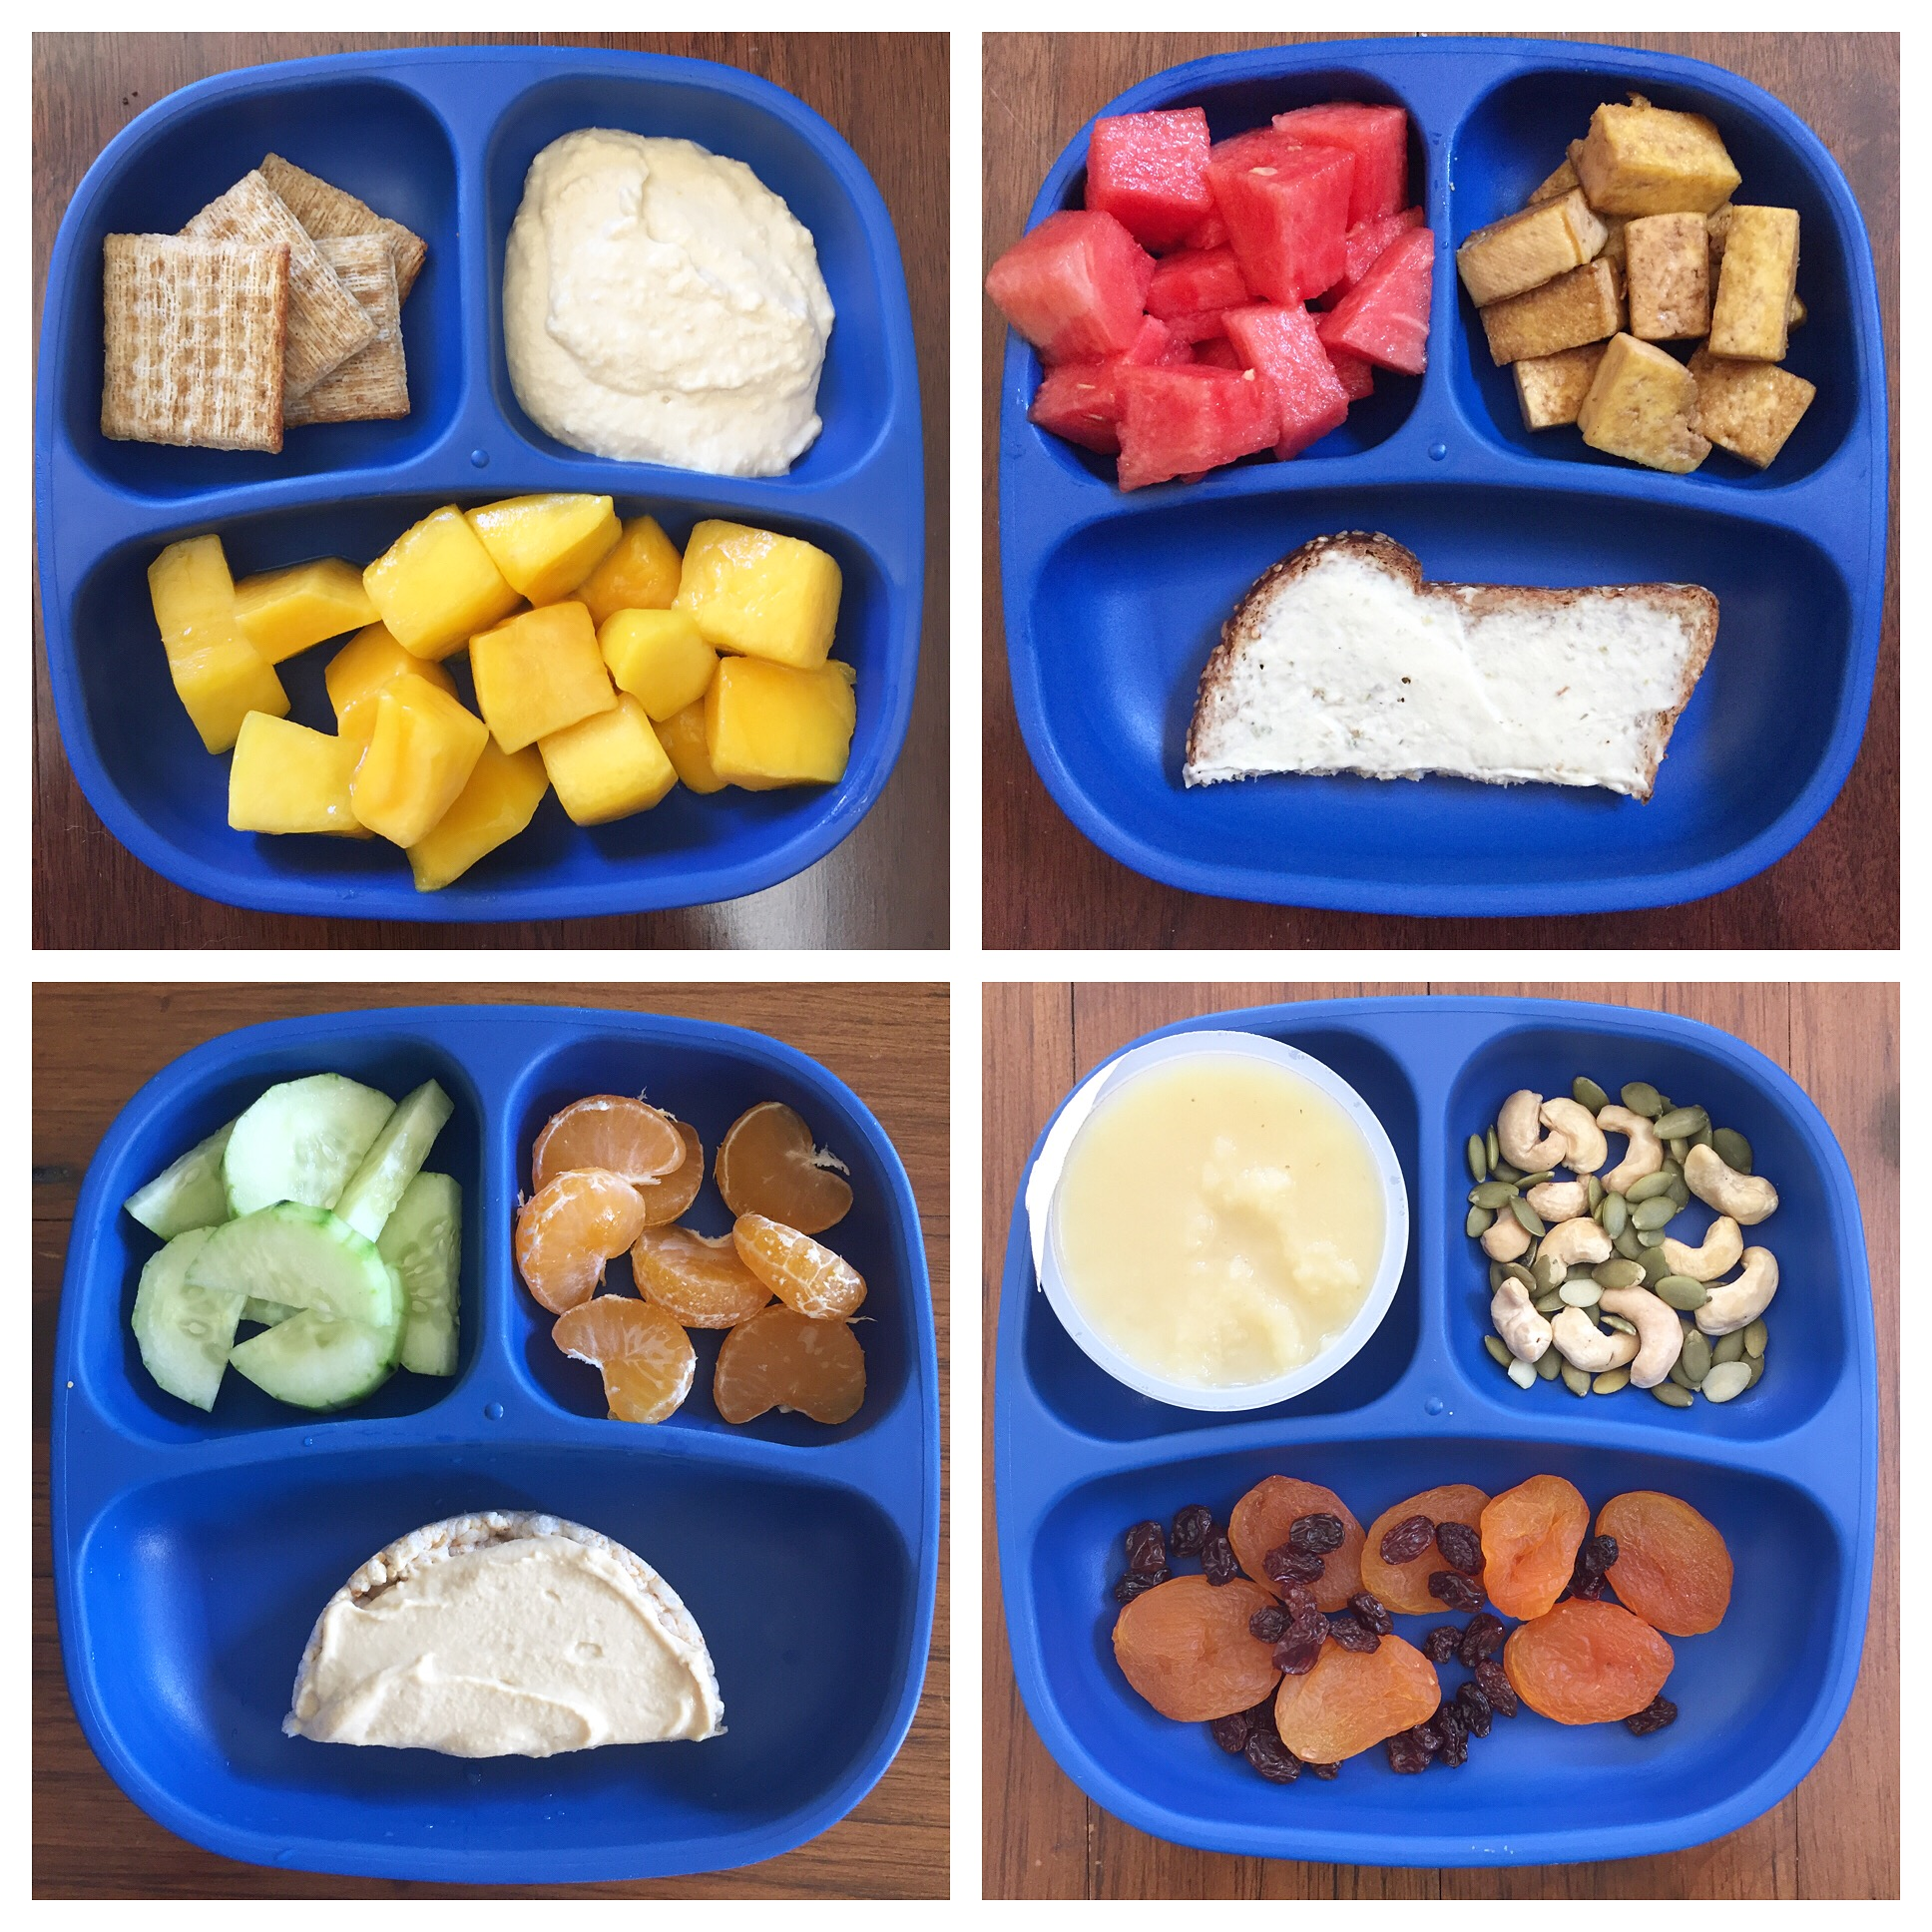 Snack platters: Low-sodium whole grain crackers, hummus, mango (from frozen), watermelon, tofu, whole grain toast with cultured cashew spread, cucumber, oranges, whole grain rice cake with hummus, apple sauce, cashews and pumpkin seeds, dried apricots and raisins.